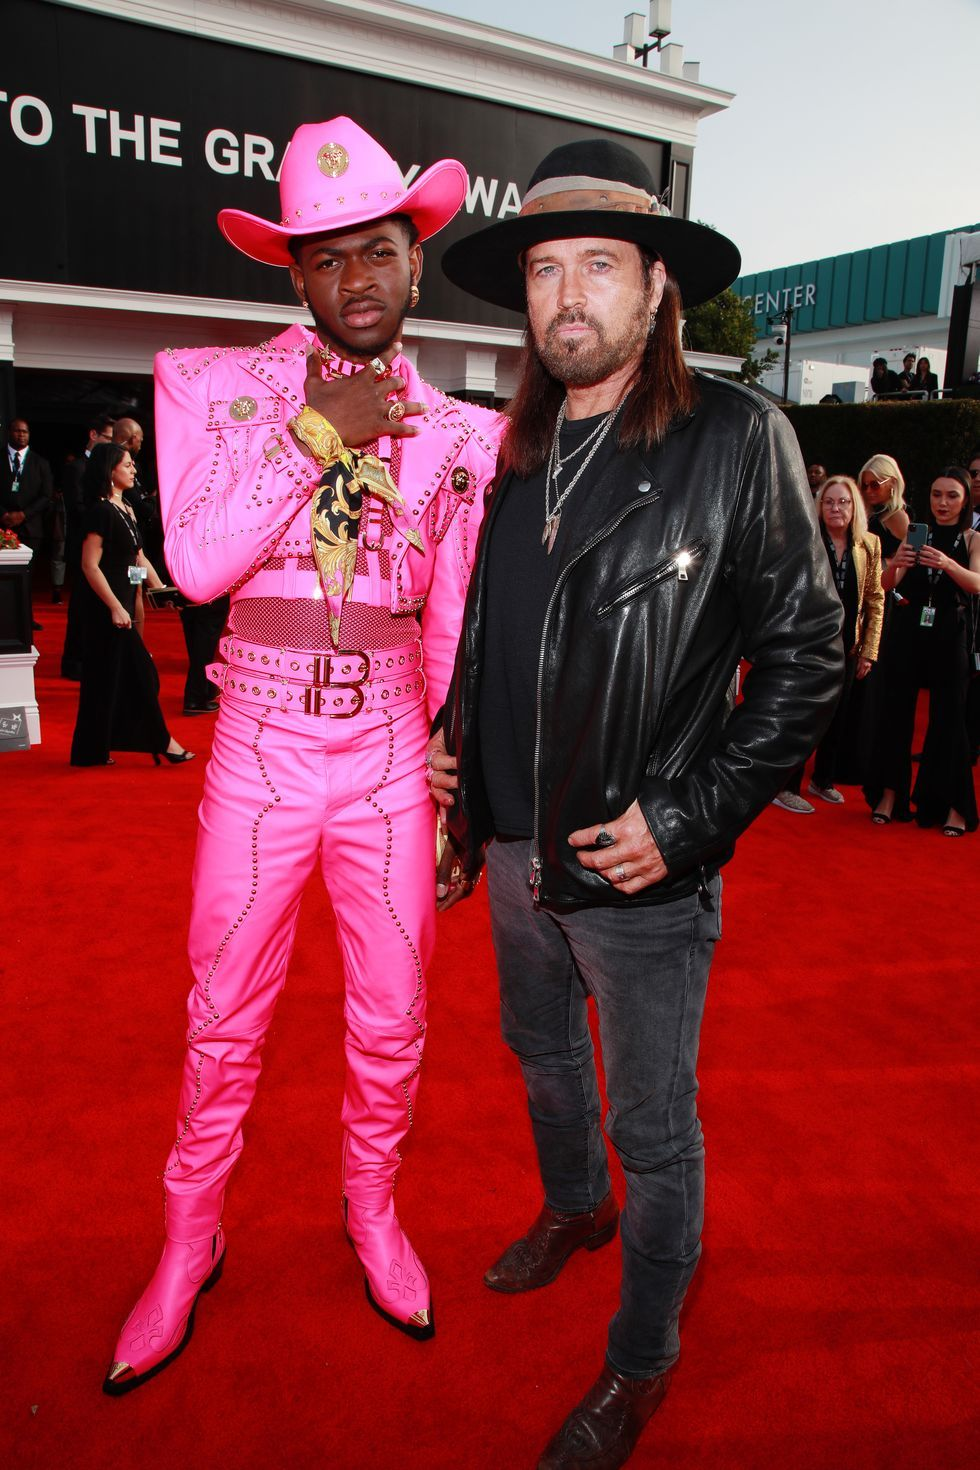 Lil Nas X Brings Pink Bondage to the Grammys